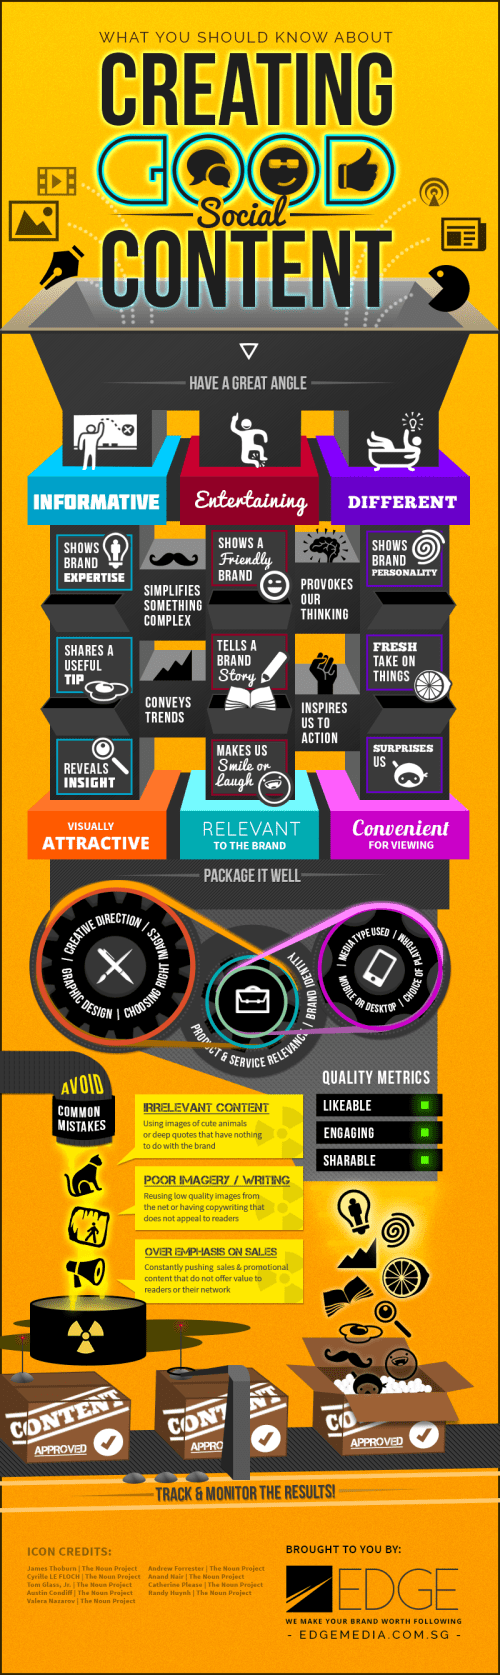 Edge_Infographic_Creating-Good-Social-Content